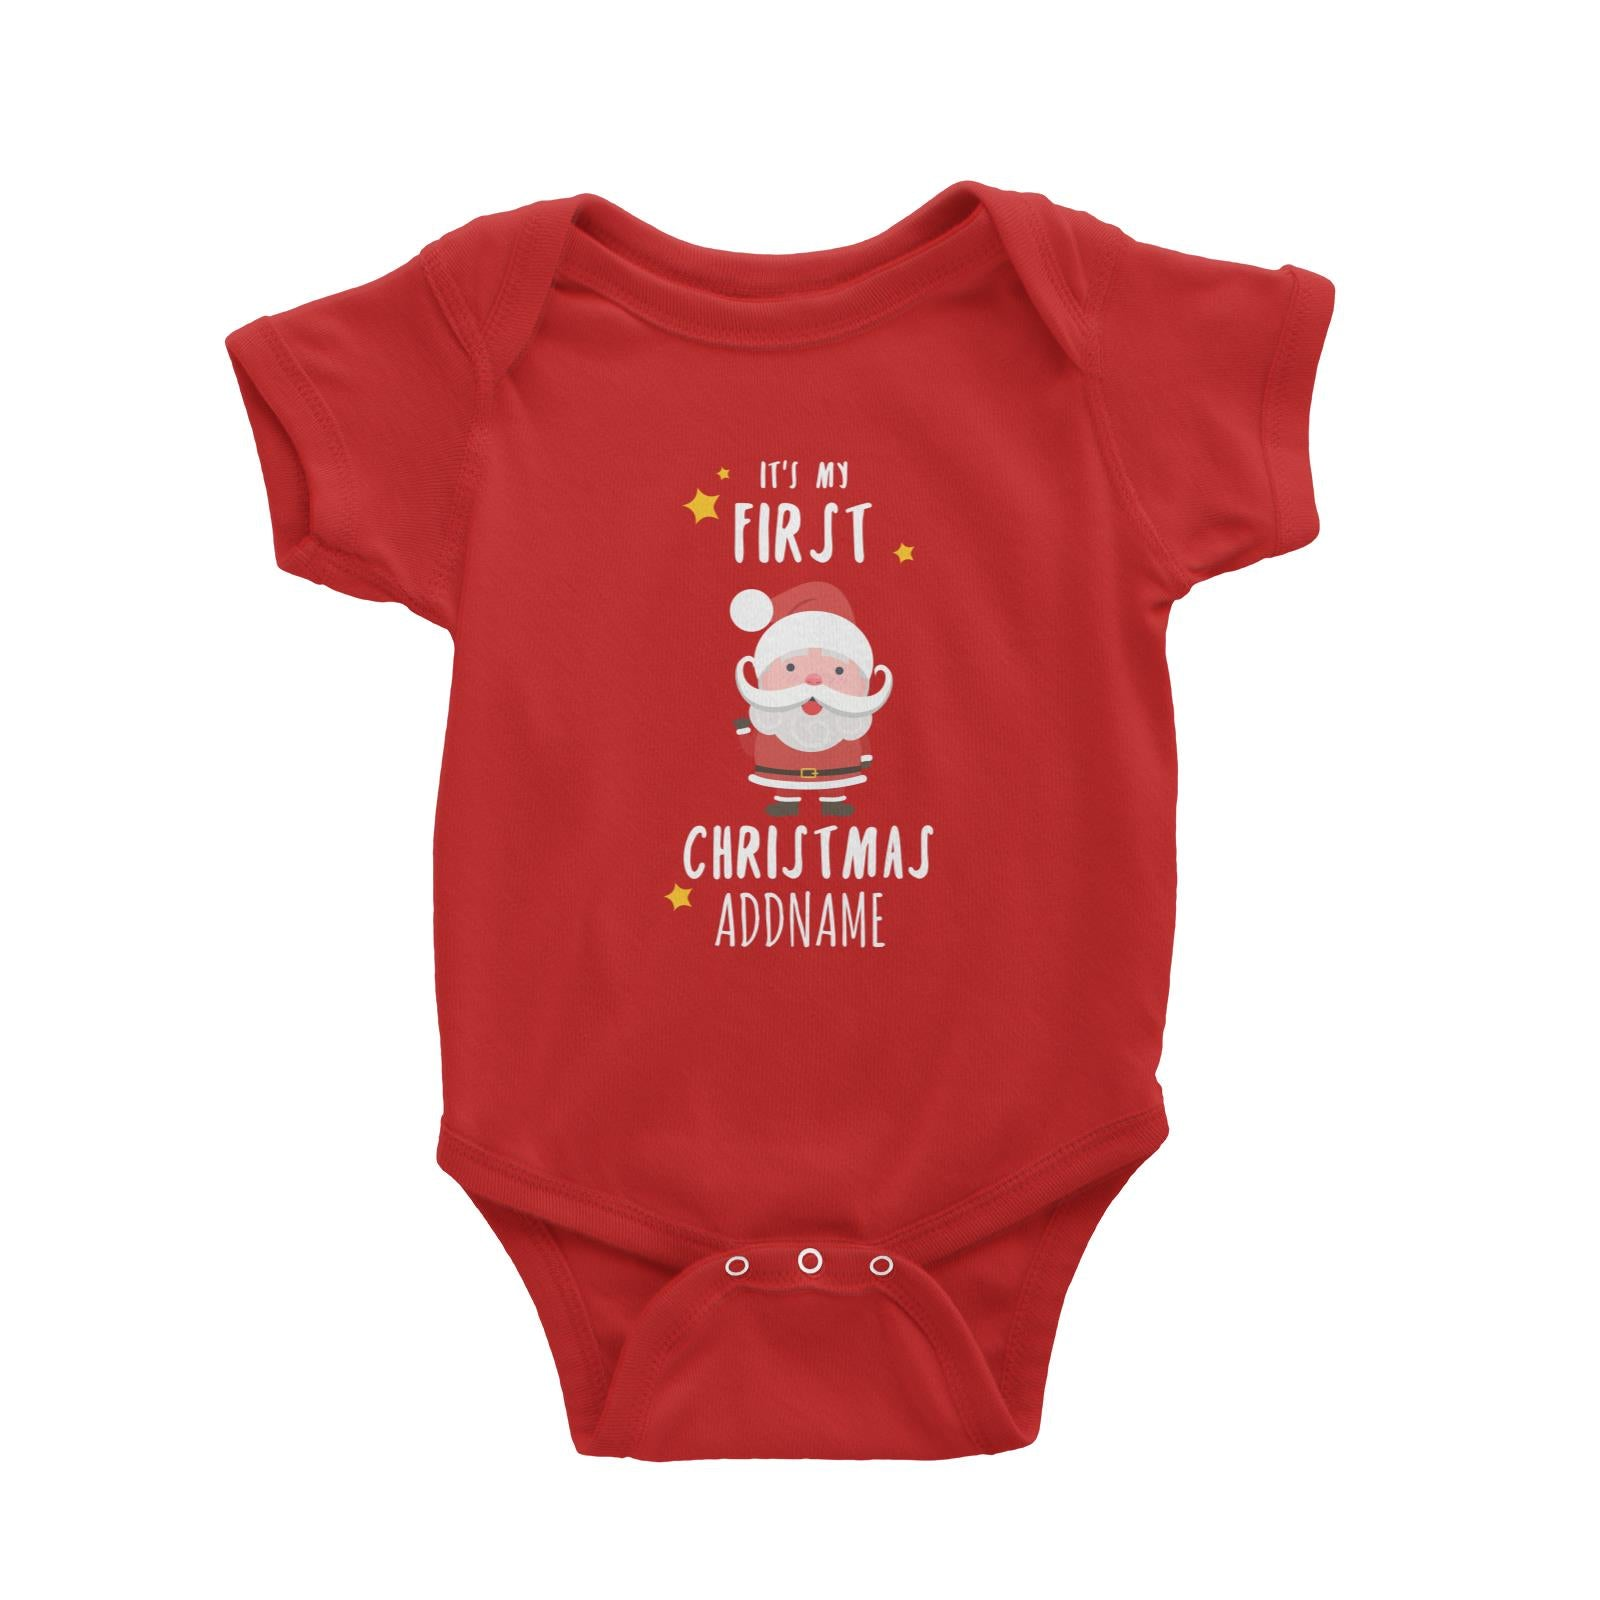 Cute Santa First Christmas Addname Baby Romper  Personalizable Designs